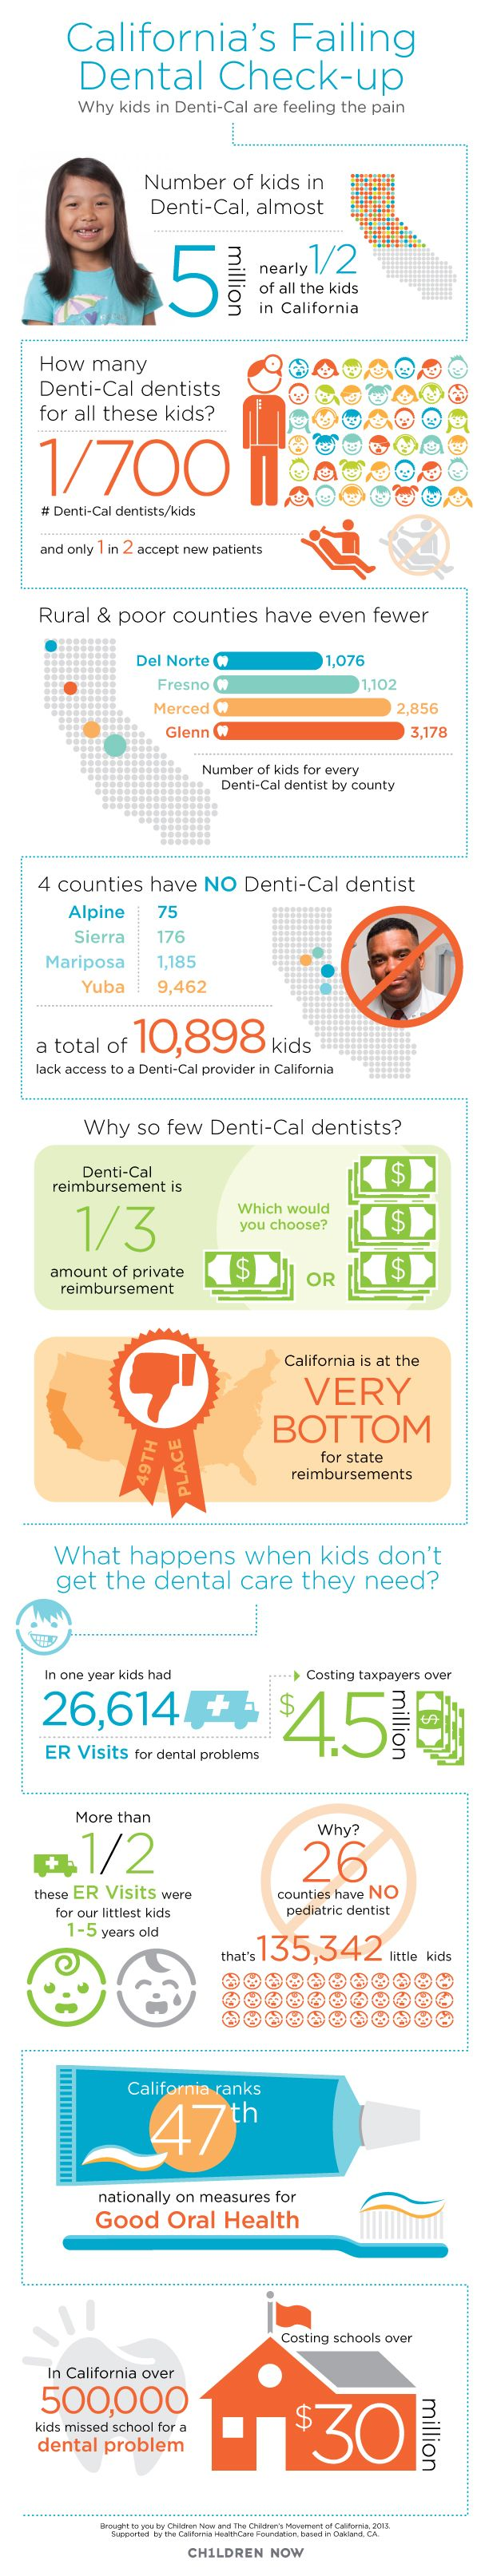 Almost half of all kids in California are enrolled in Denti-Cal, the state's public dental insurance program. But, there are far too few dentists to serve them and so the Denti-Cal system isn't doing what it's meant to do. This is bad news for taxpayers, schools and, most importantly, kids.